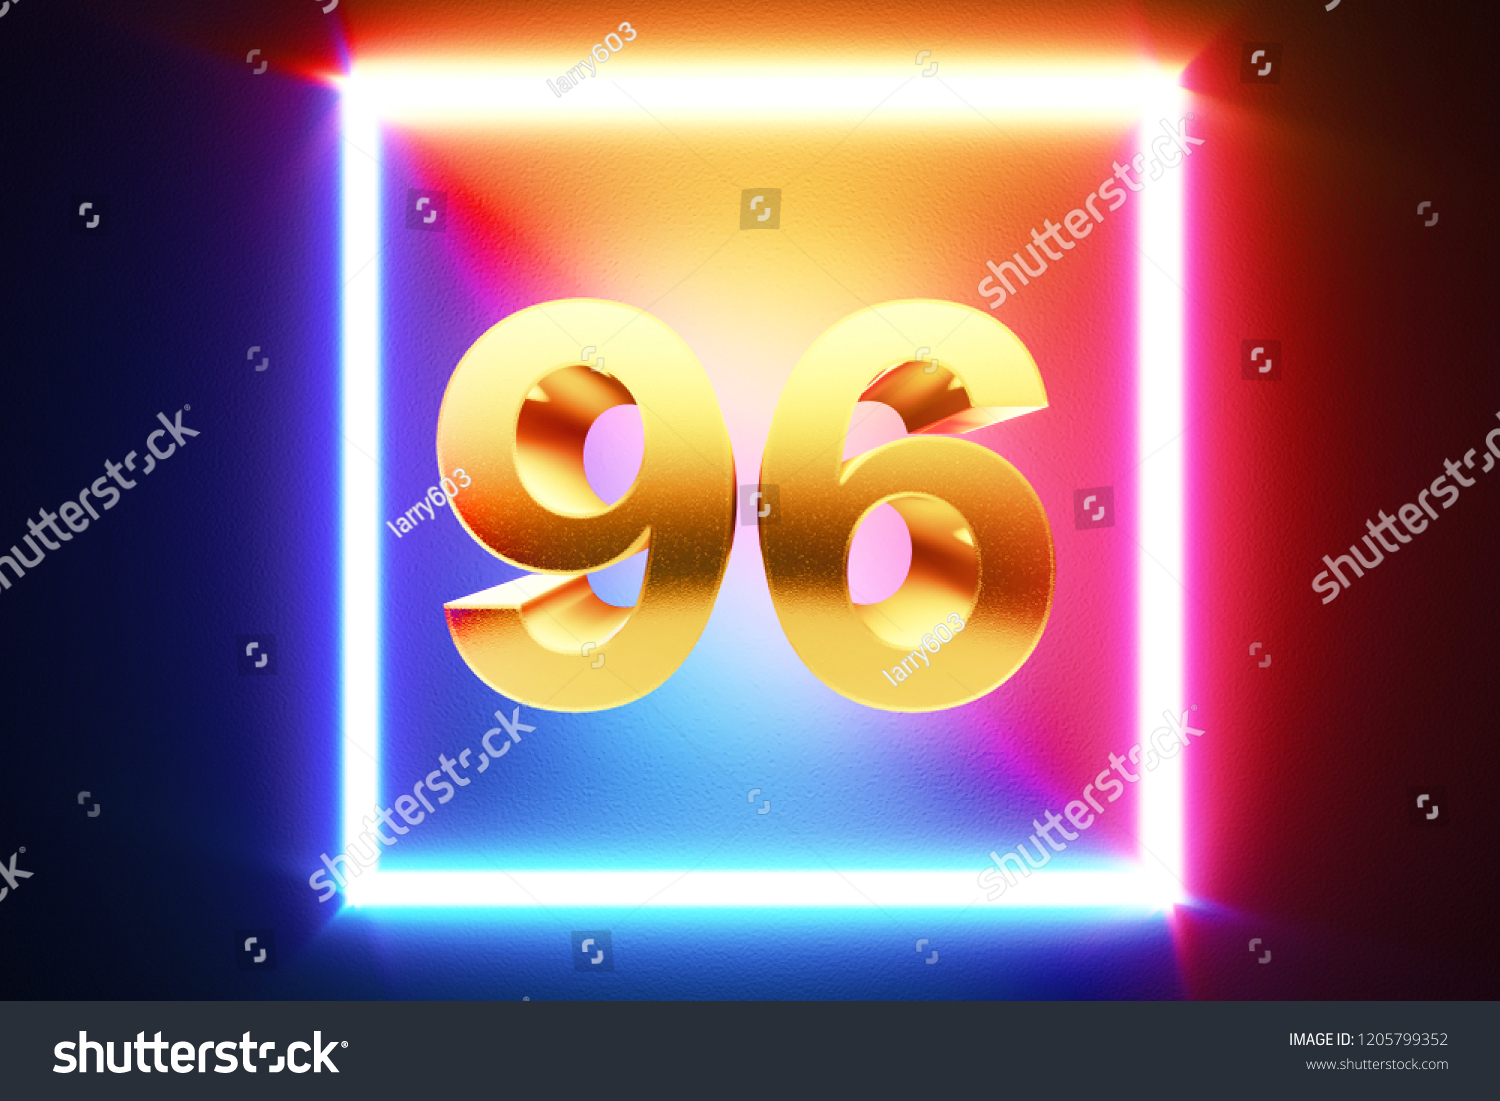 hight resolution of isolated golden number 96 frame in neon yellow fuchsia cyan and blue colors on